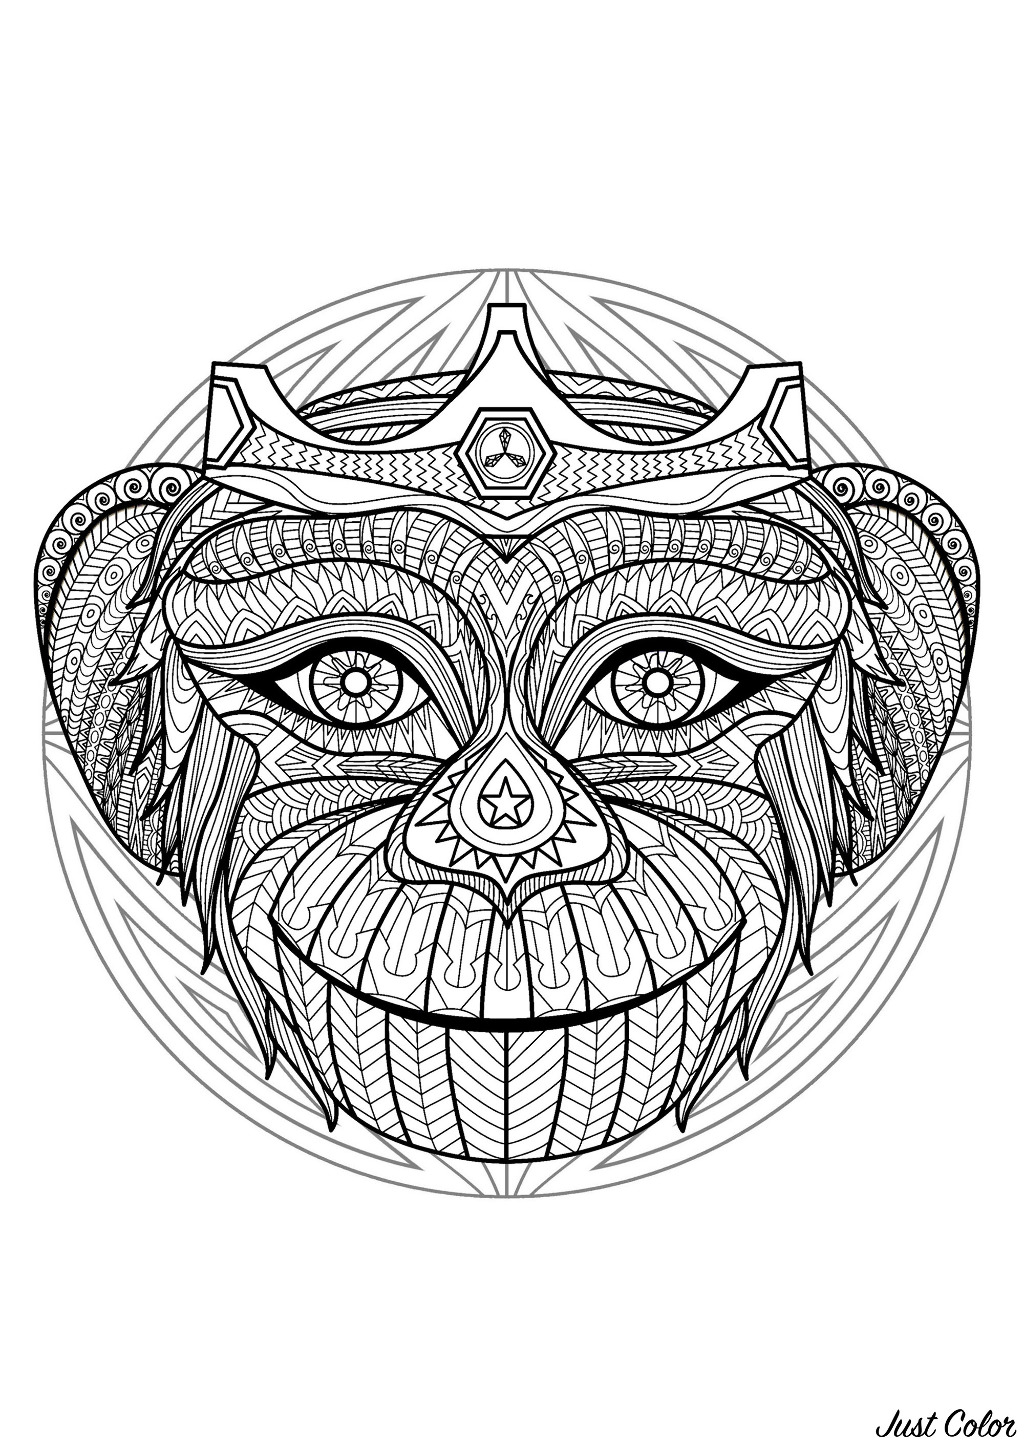 Mandala to color with very special Monkey head and simple patterns in background